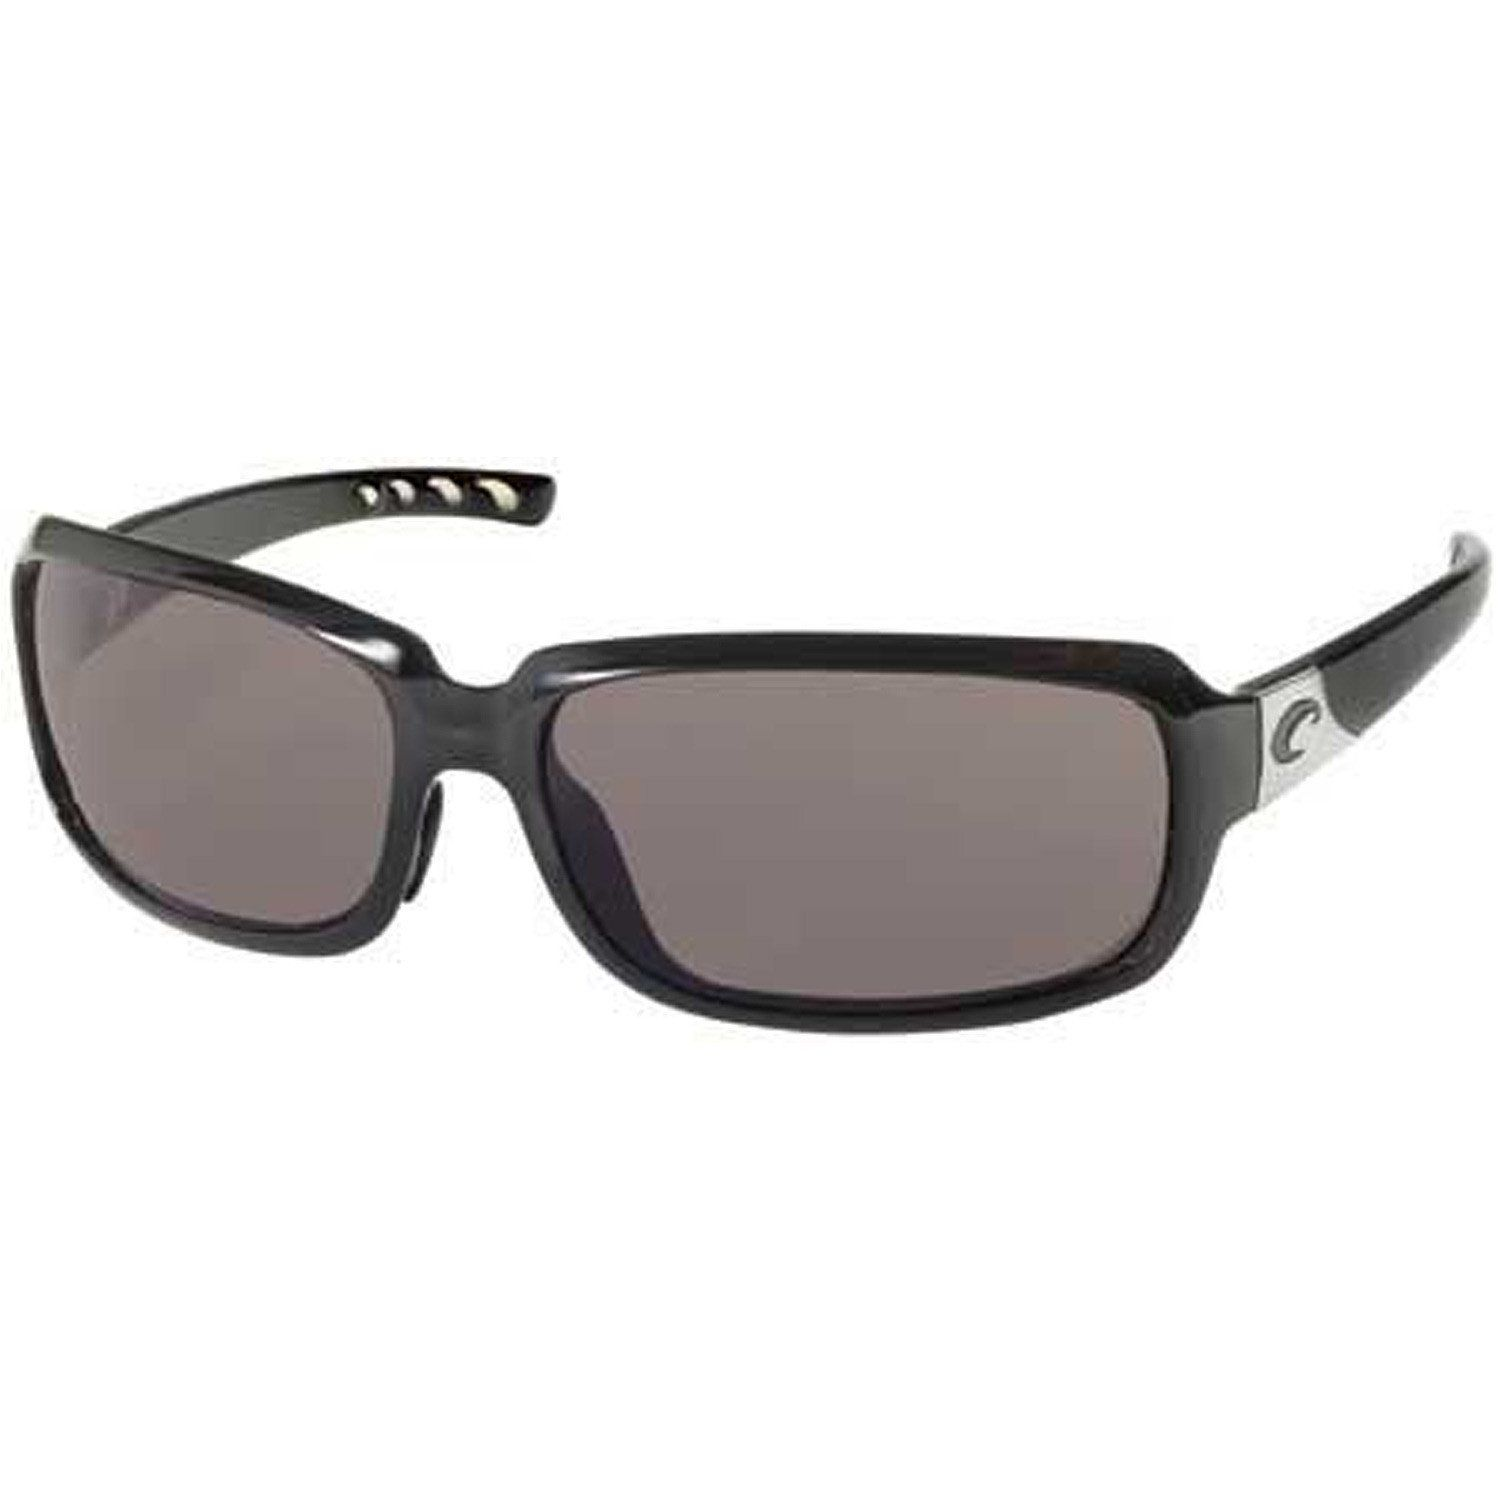 8e81dbd9ad Smith Optics Serpico Polarized Sunglasses